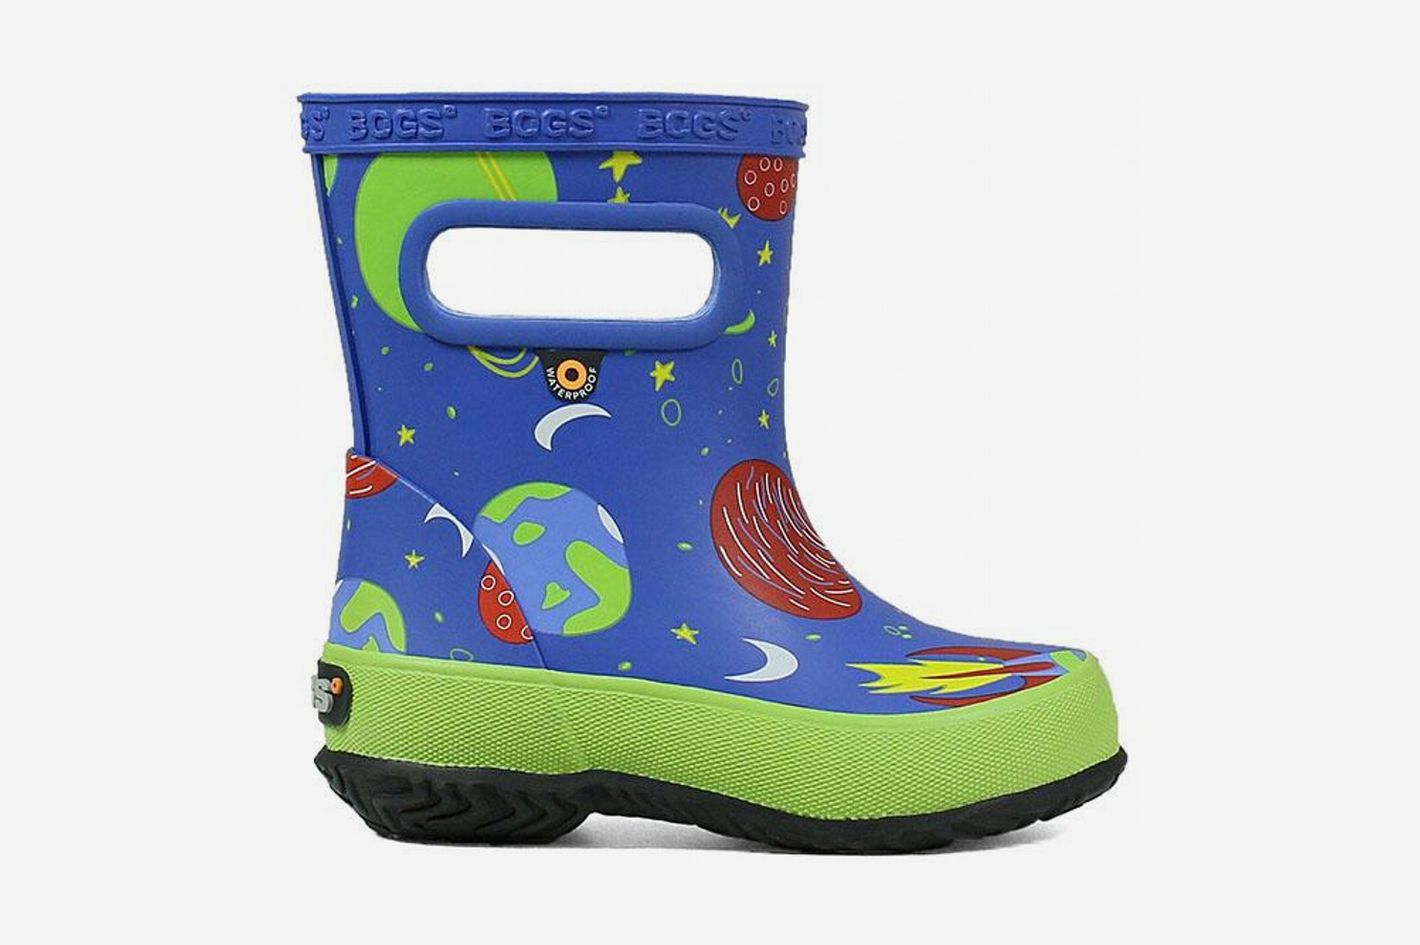 33d61cbd84daa4 Bogs Kids  Skipper Waterproof Rubber Rain Boot